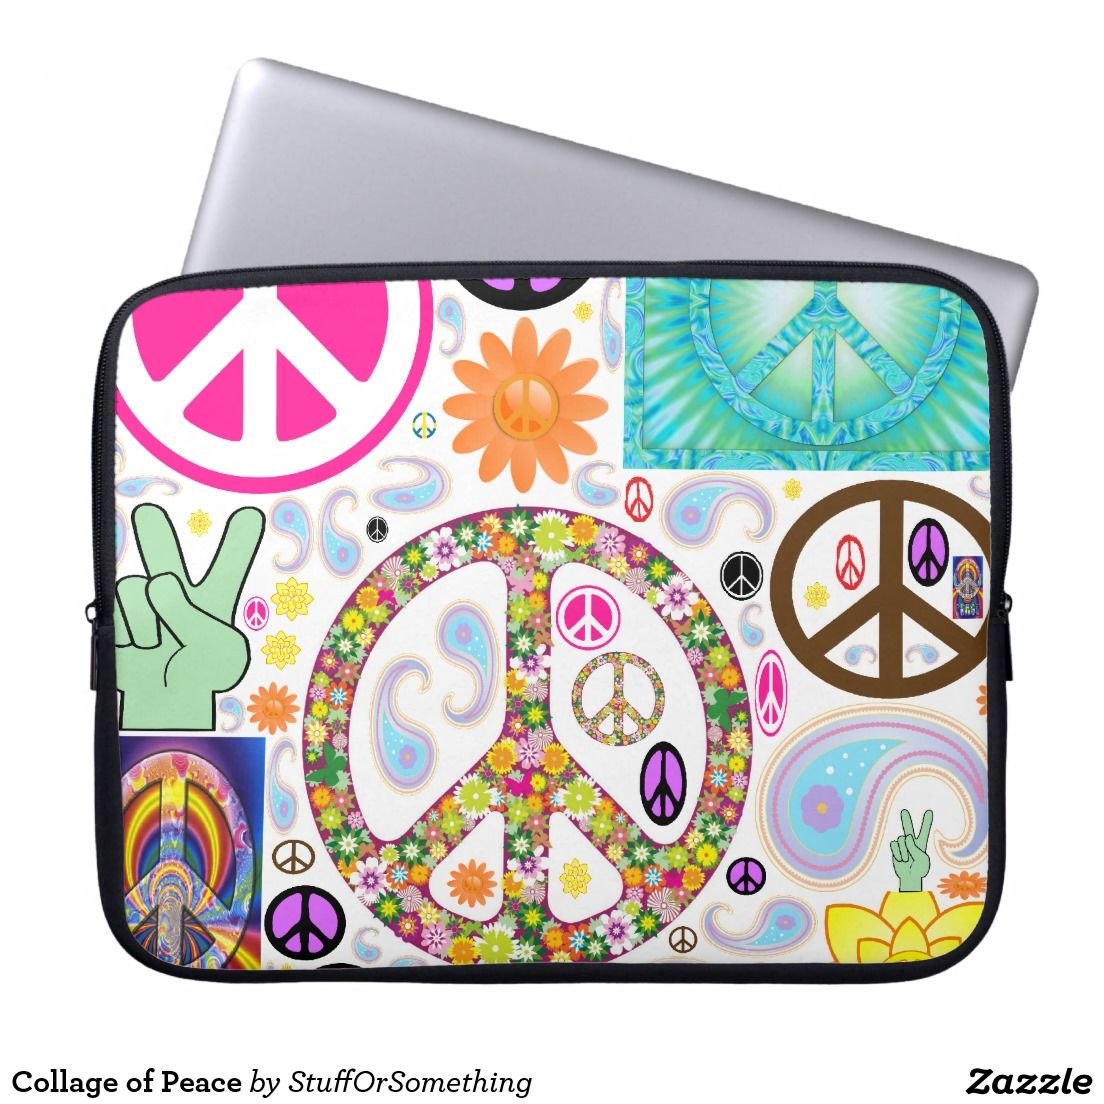 Collage of Peace Neoprene Laptop Sleeve 15 inch (x2)